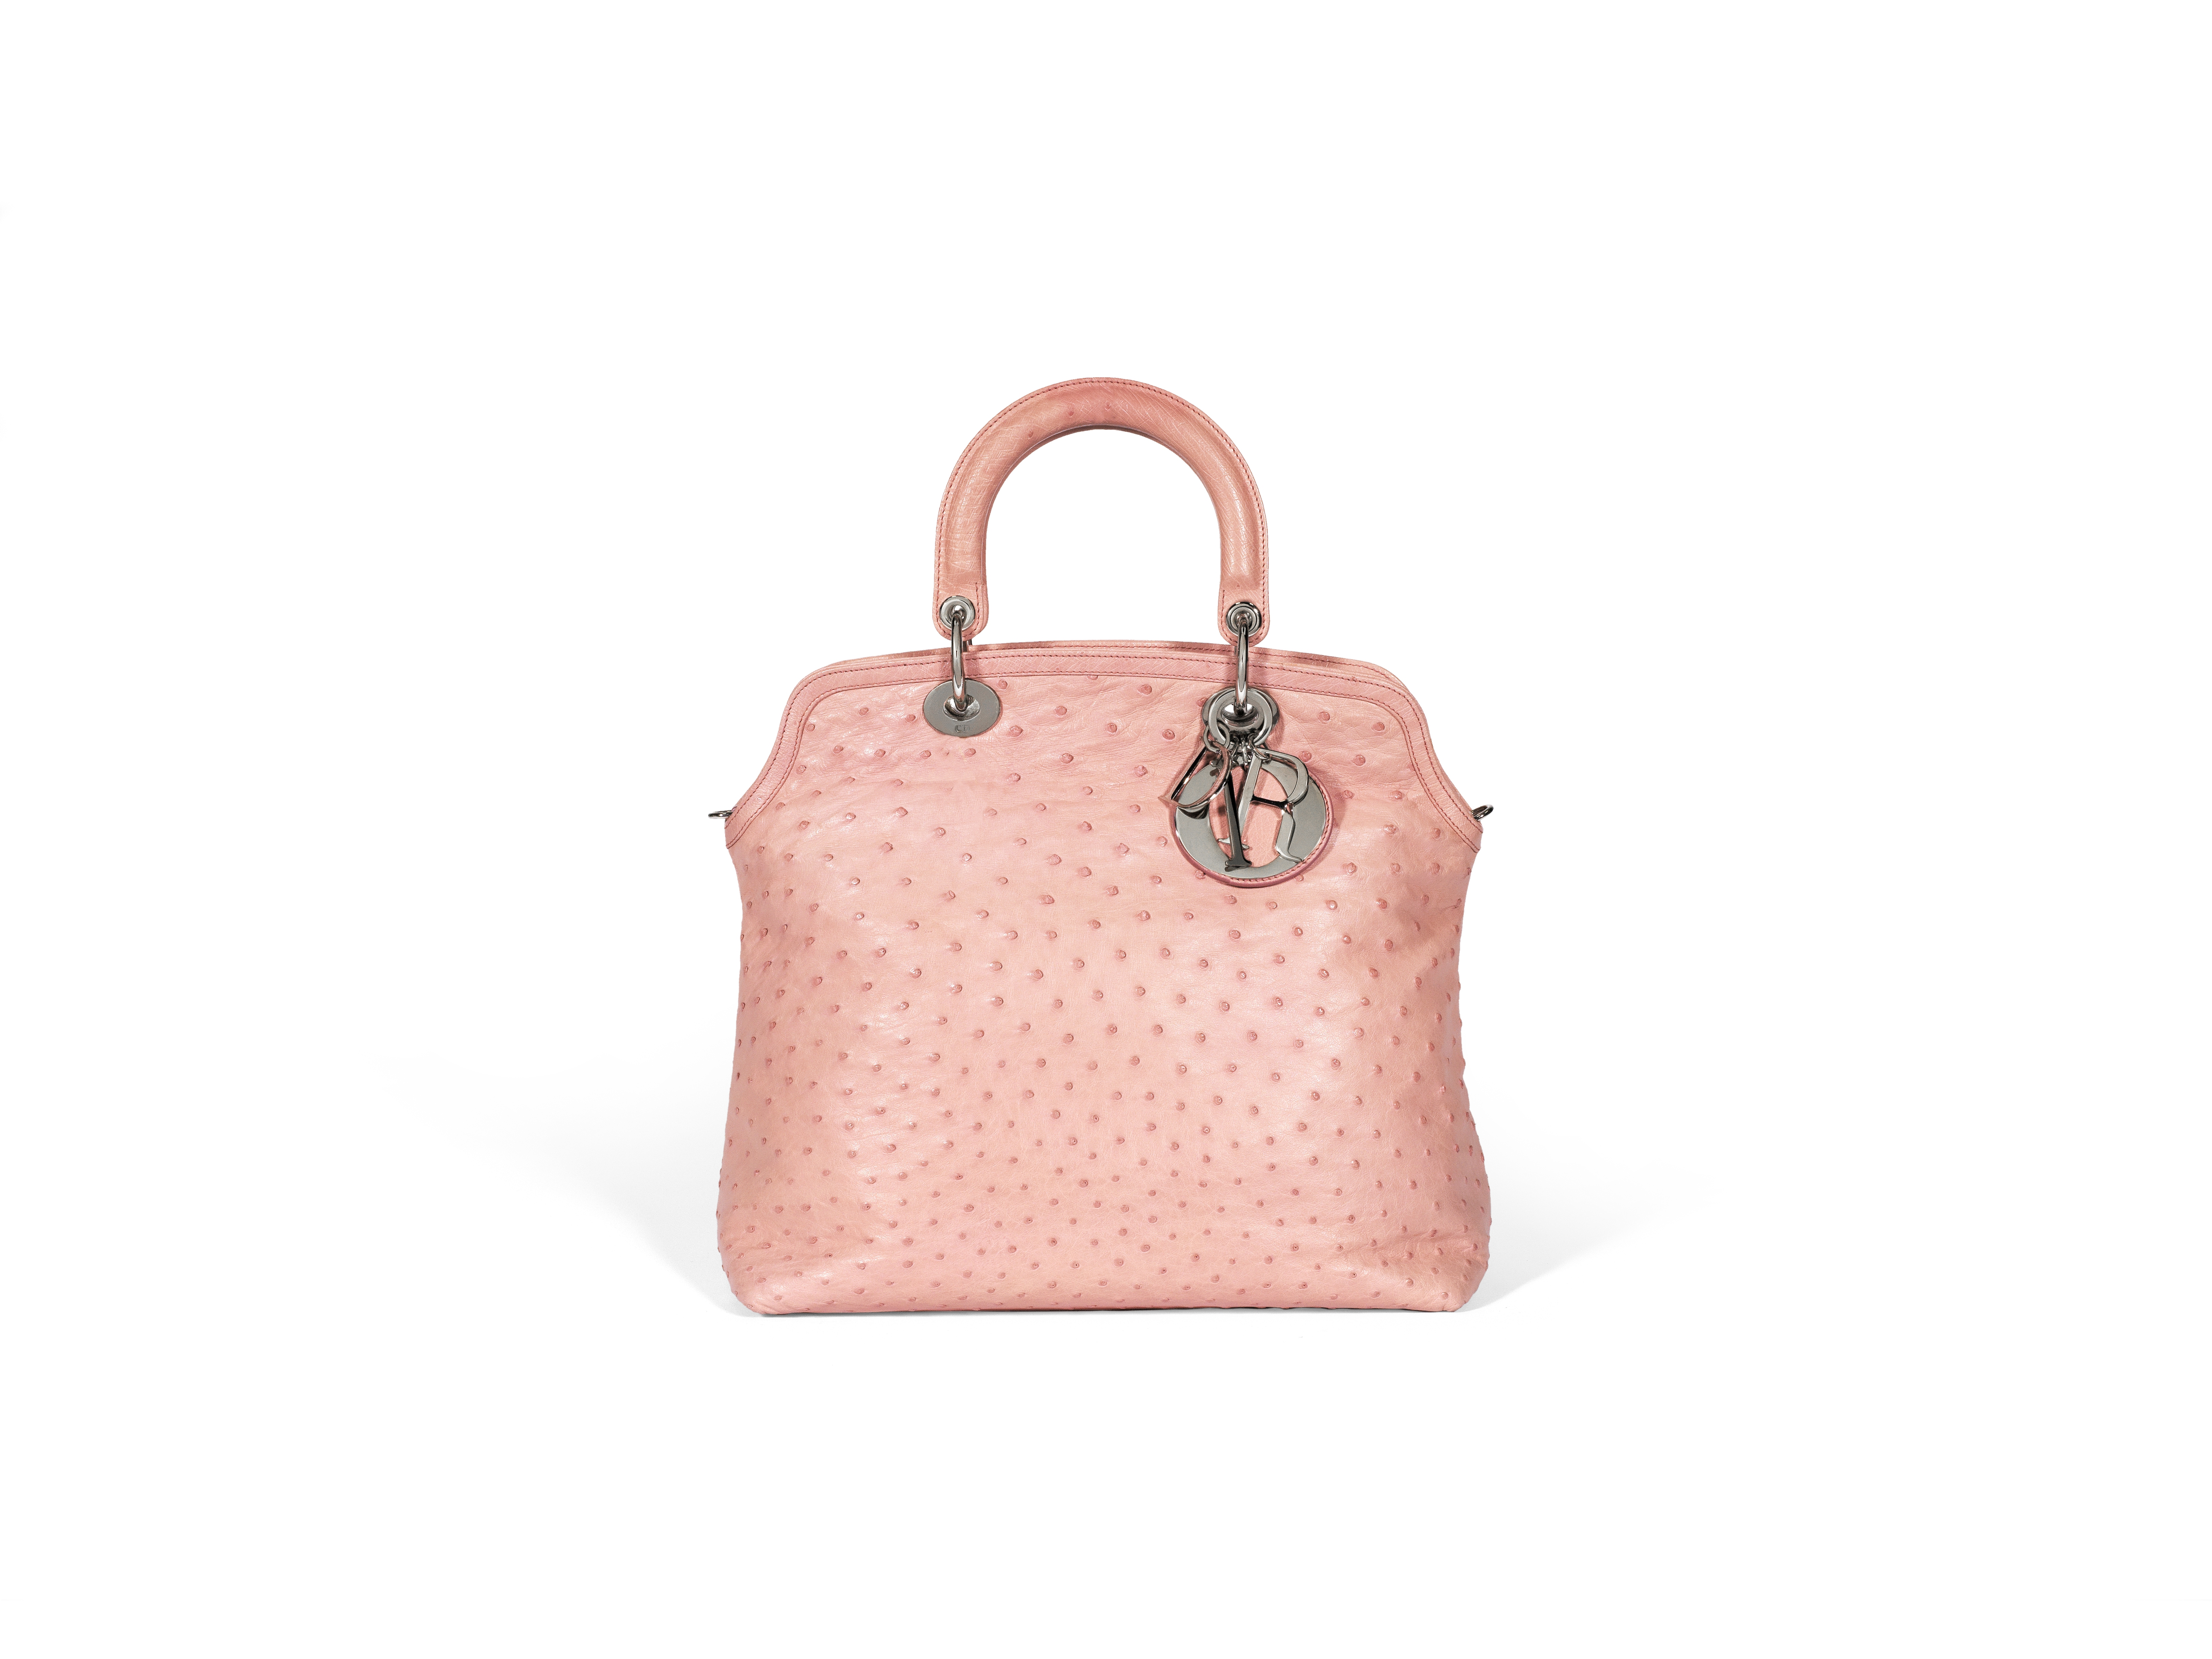 Pink Ostrich Granville Tote, Christian Dior, c. 2011, (Includes shoulder strap and dust bag)